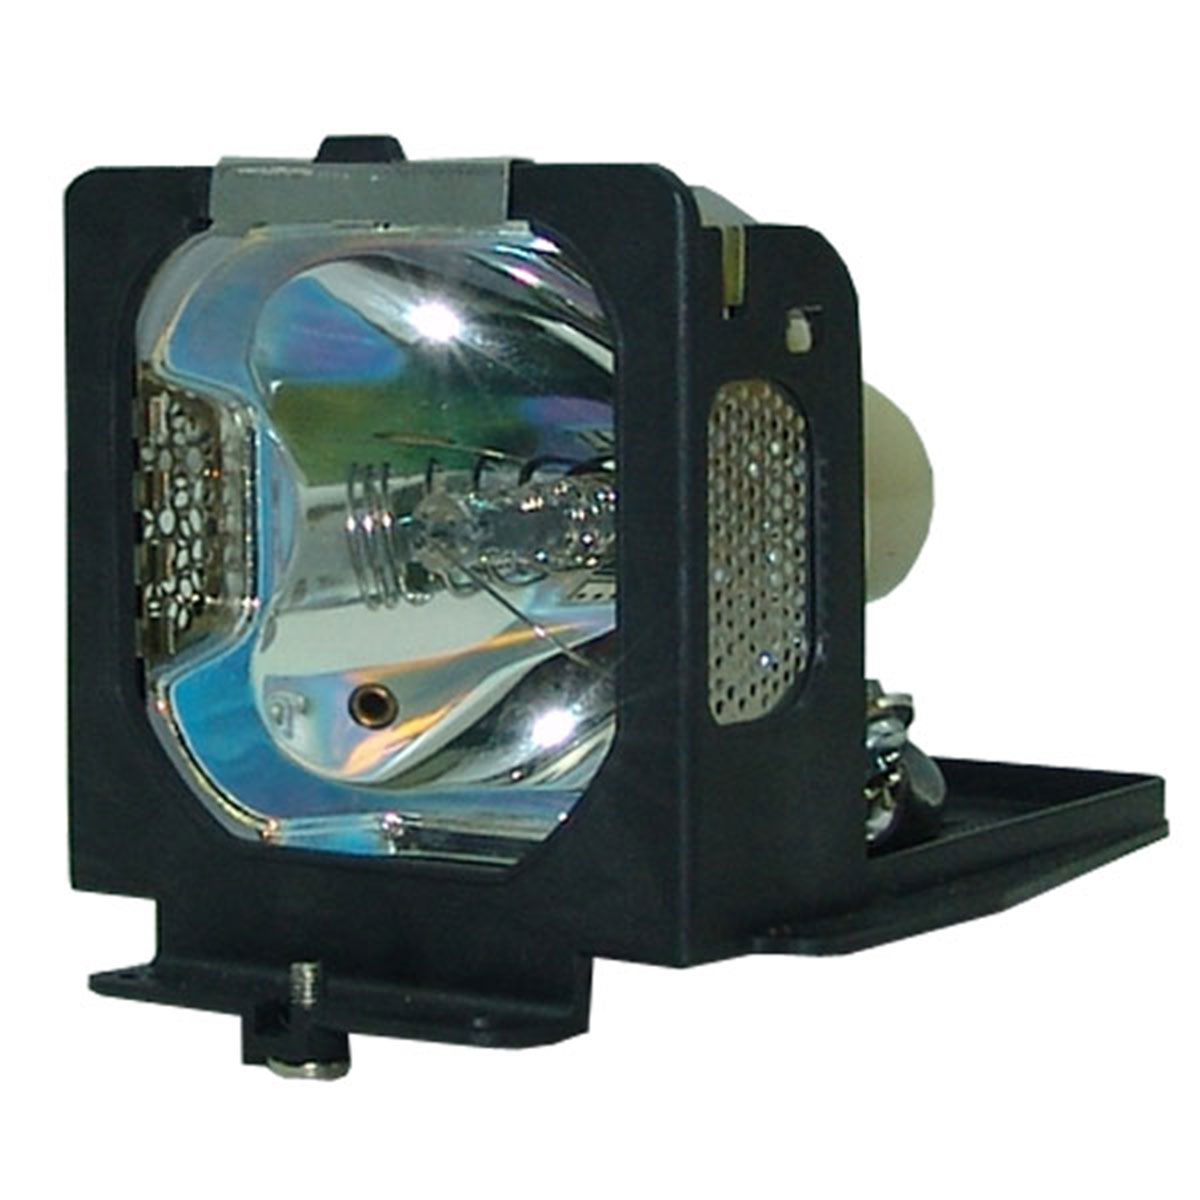 Original Philips Projector Lamp Replacement with Housing for Canon LV-7225 - image 5 of 5